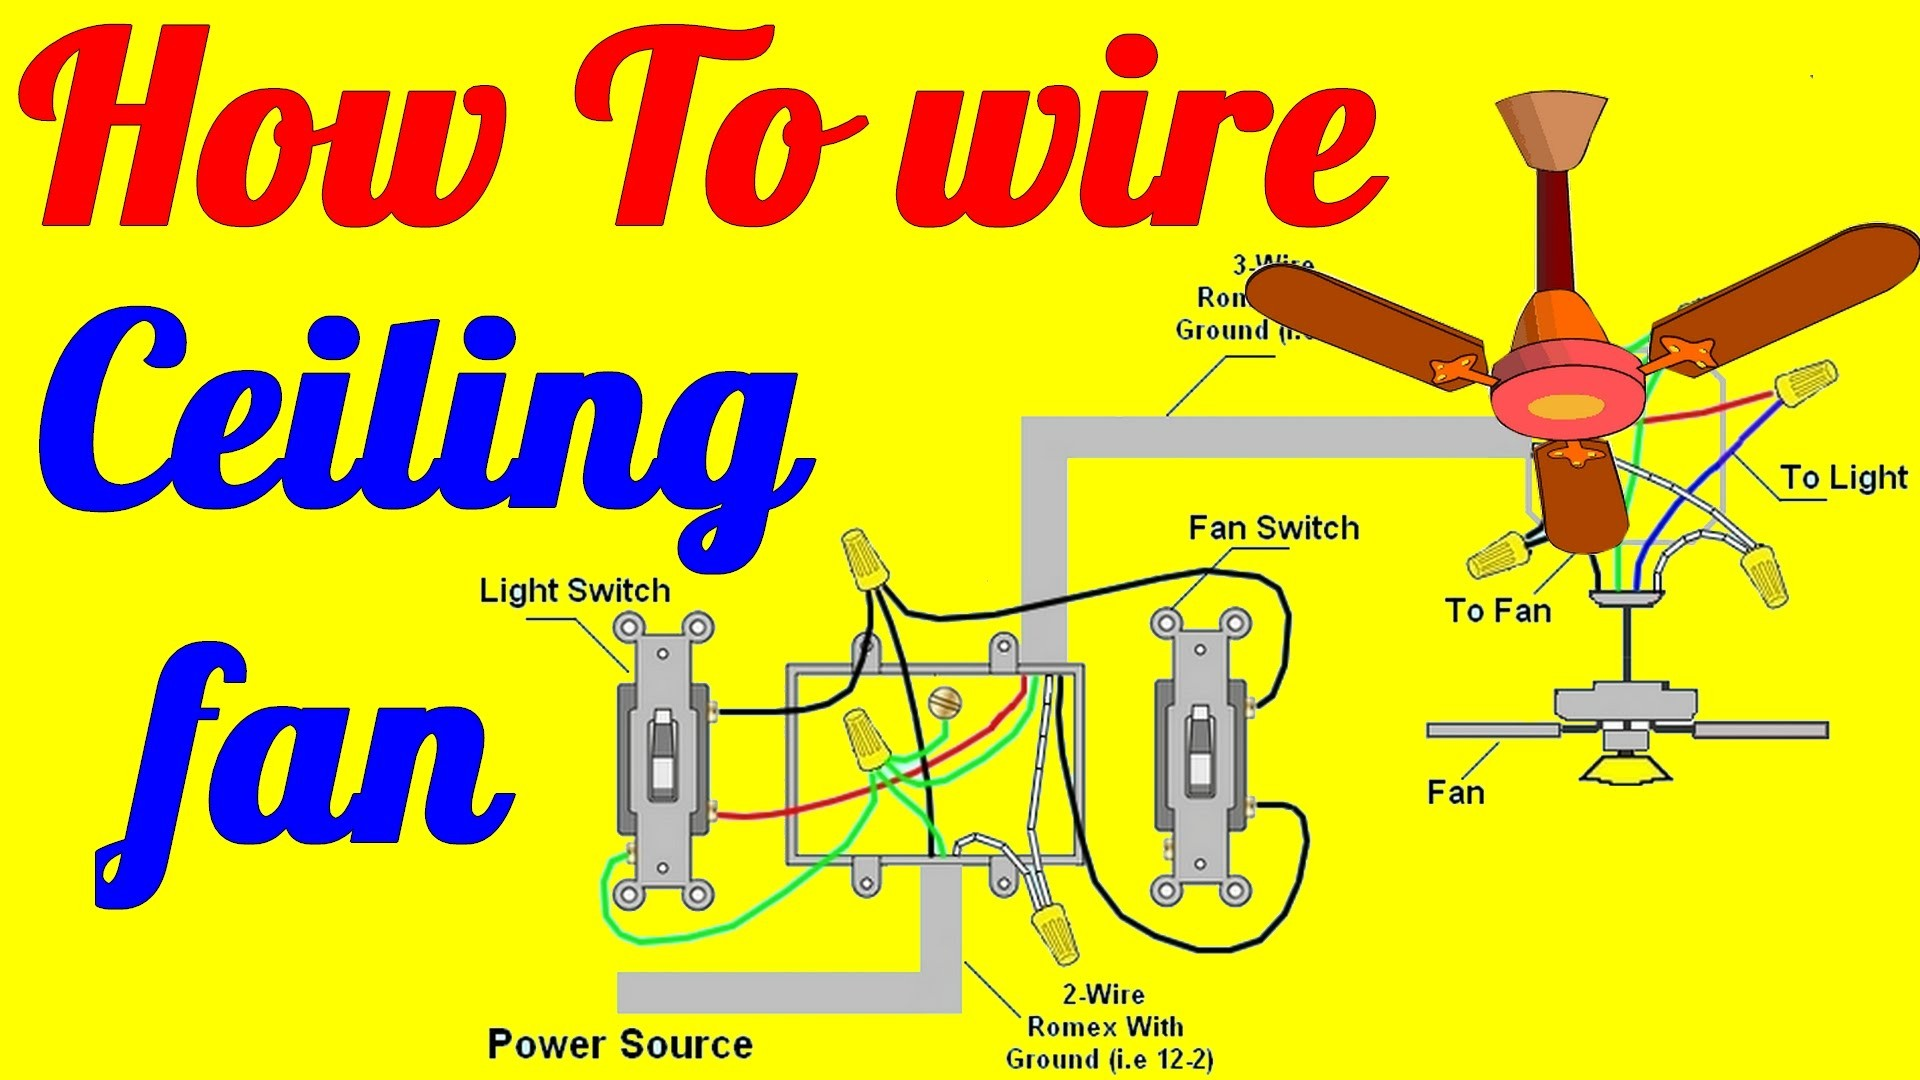 wiring diagram for 3 way switch ceiling fan ty 0279  3 way ceiling fans with lights wiring diagram  ceiling fans with lights wiring diagram